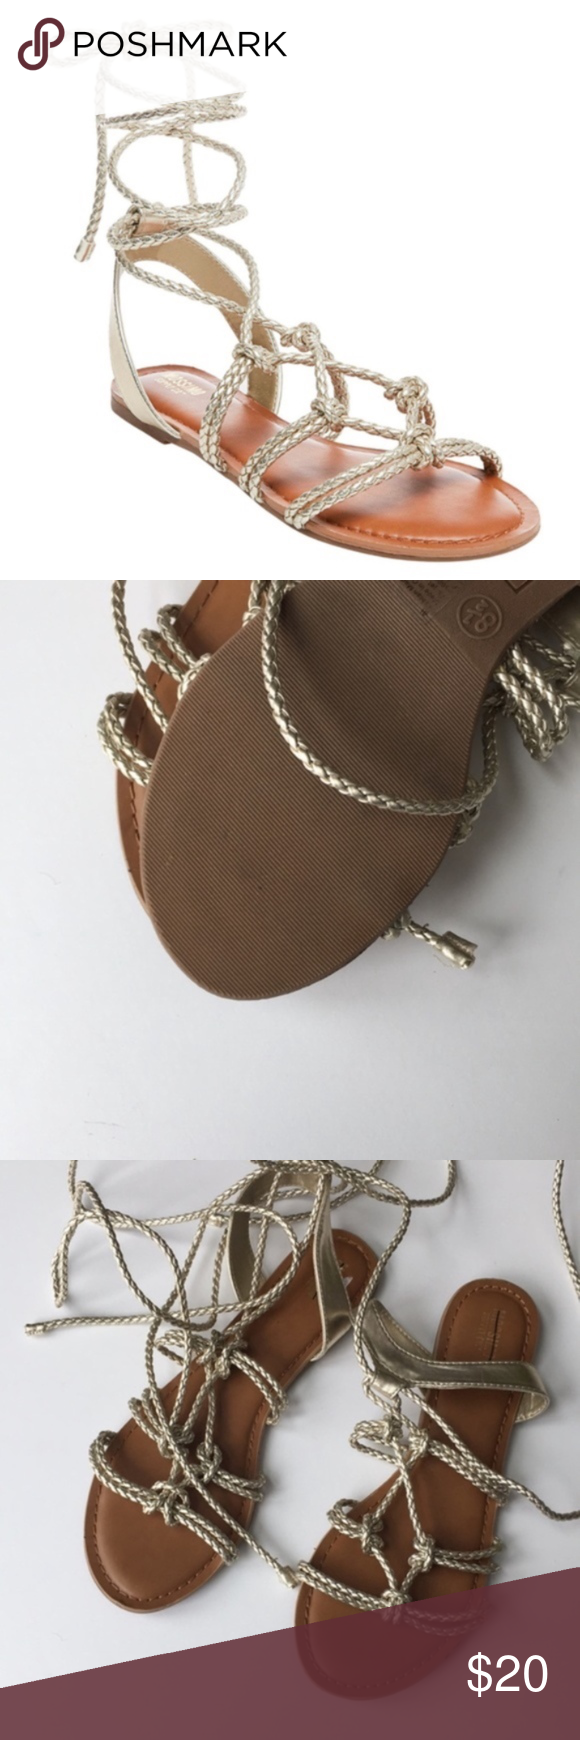 6365256a32b Mossimo Keenan Gladiator Sandals Gold New Brand  Mossimo Condition  Brand  new no tags Size  10 Mossimo Supply Co. Shoes Sandals